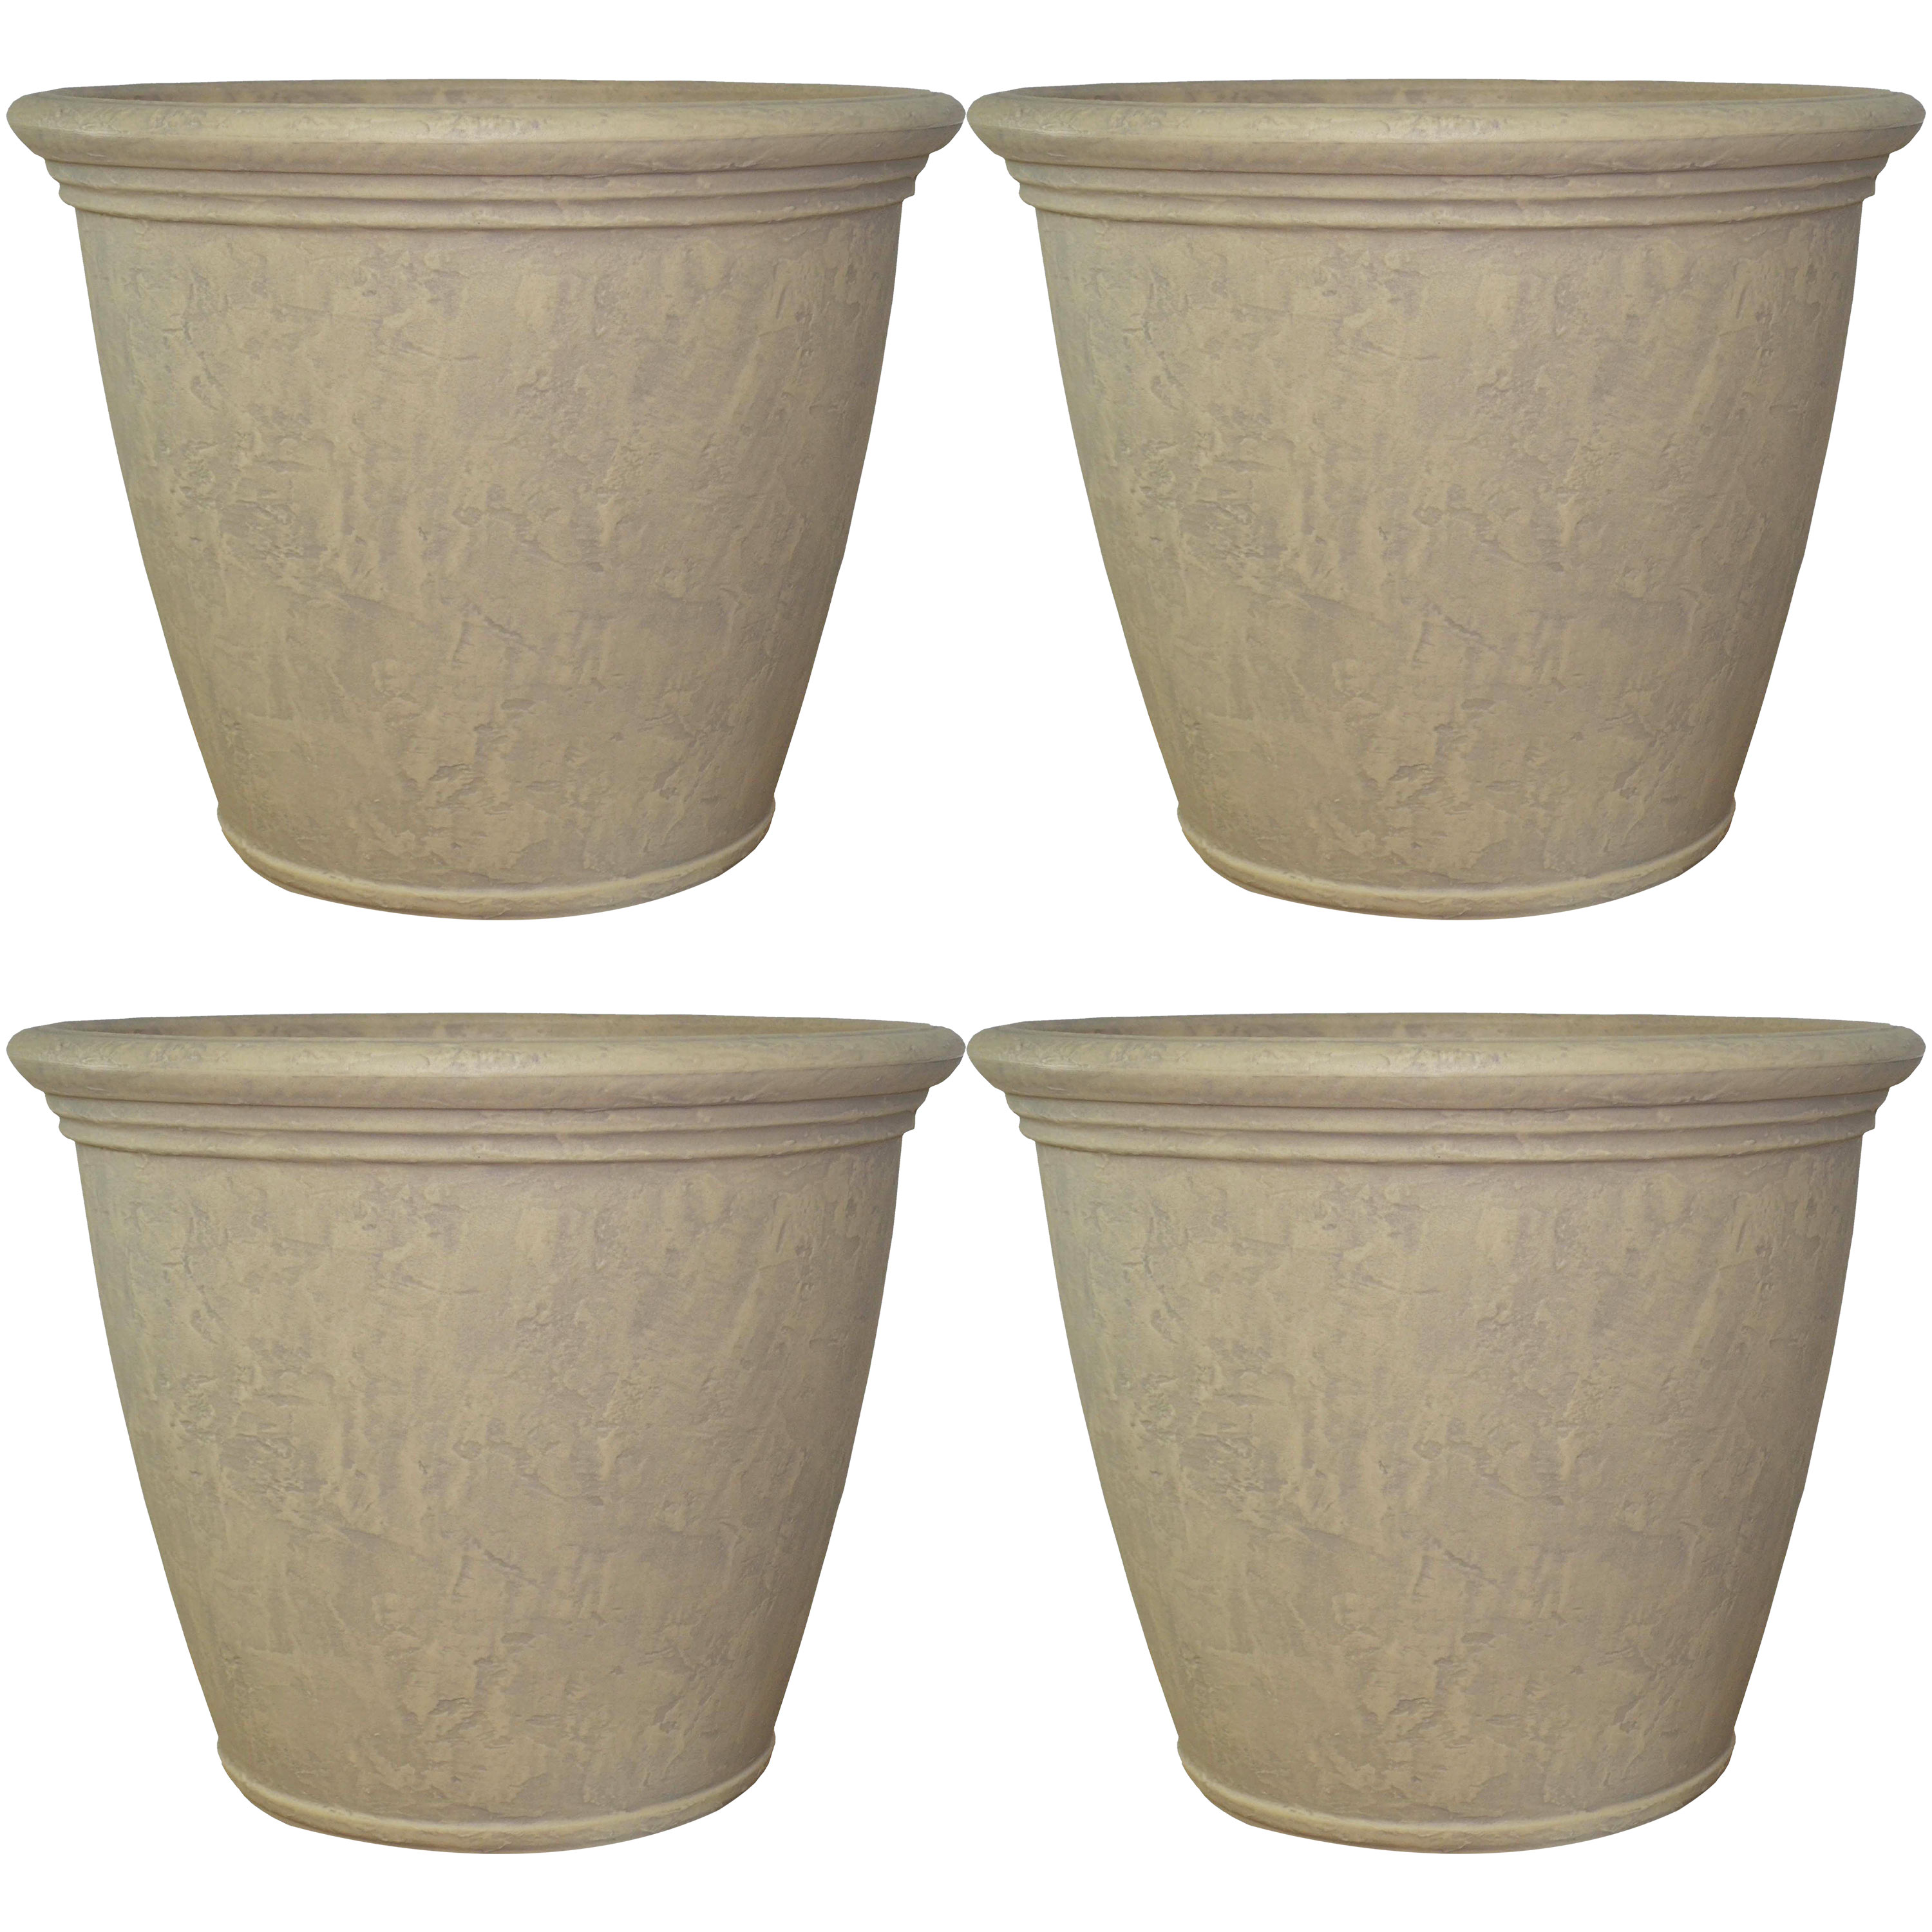 Flower Pot Planter Unbreakable Double Walled Pebble Grey Large Photo